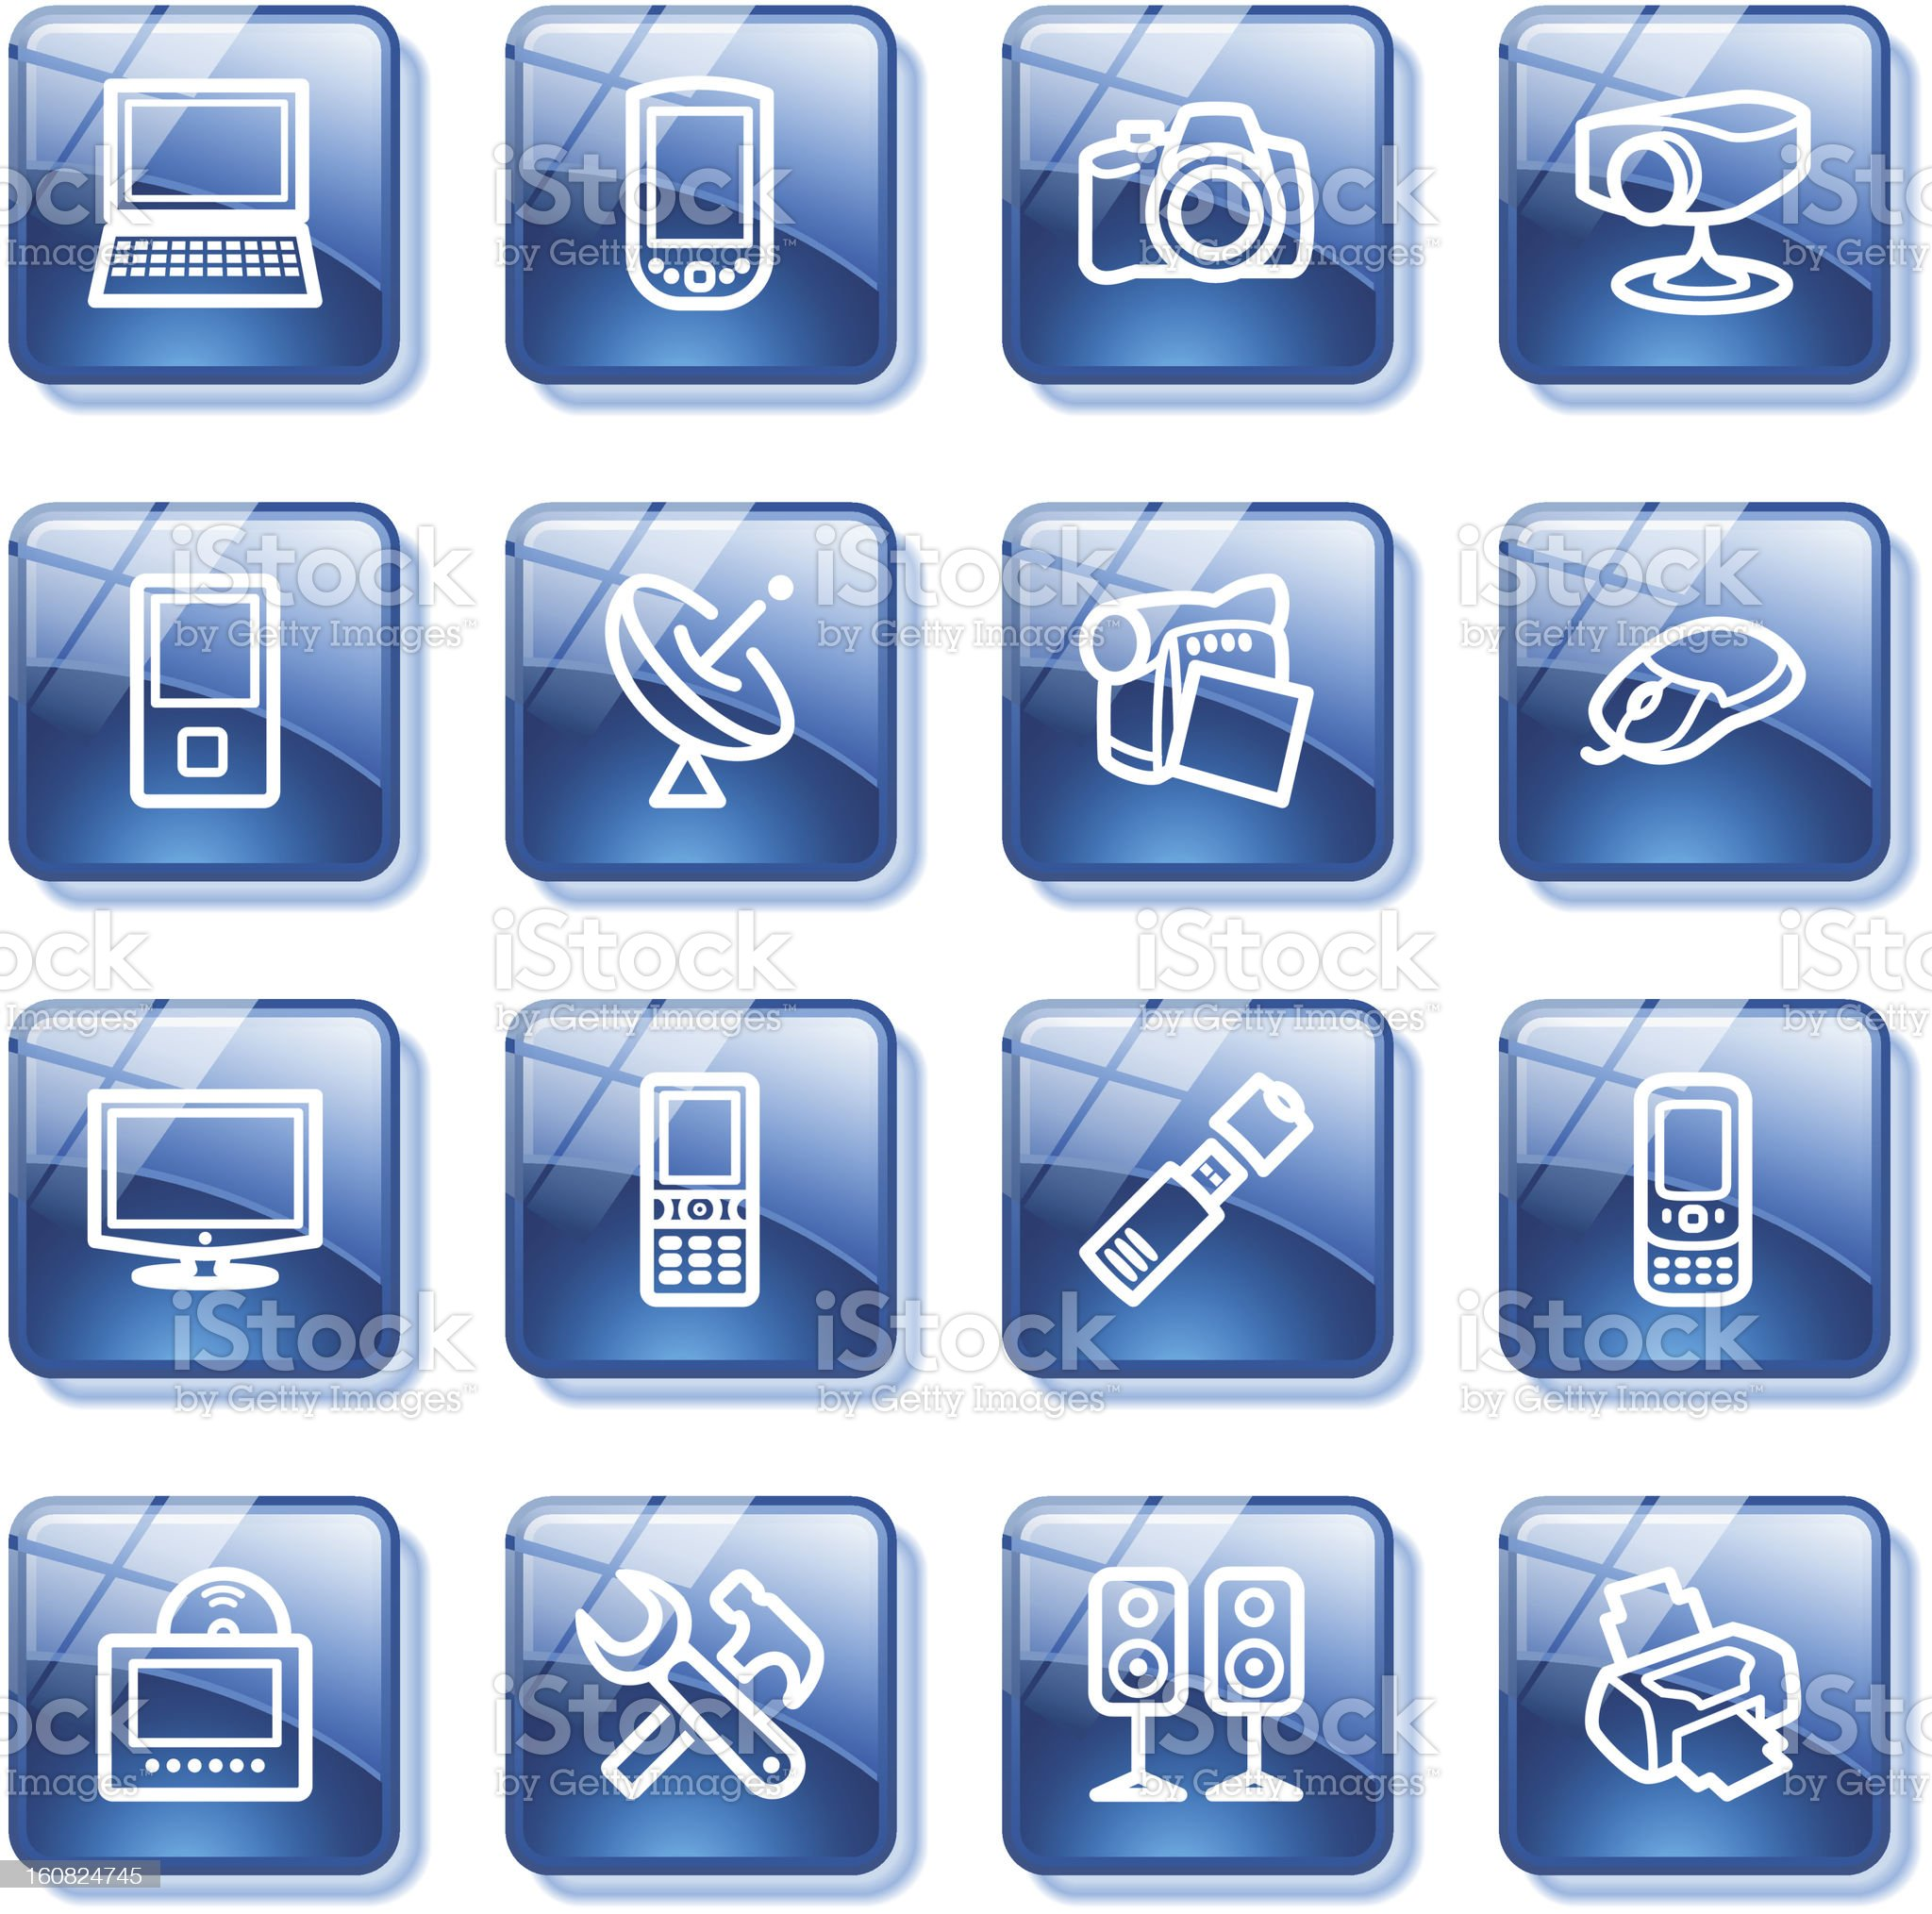 Electronics icons for web. Blue glass buttons series. royalty-free stock photo